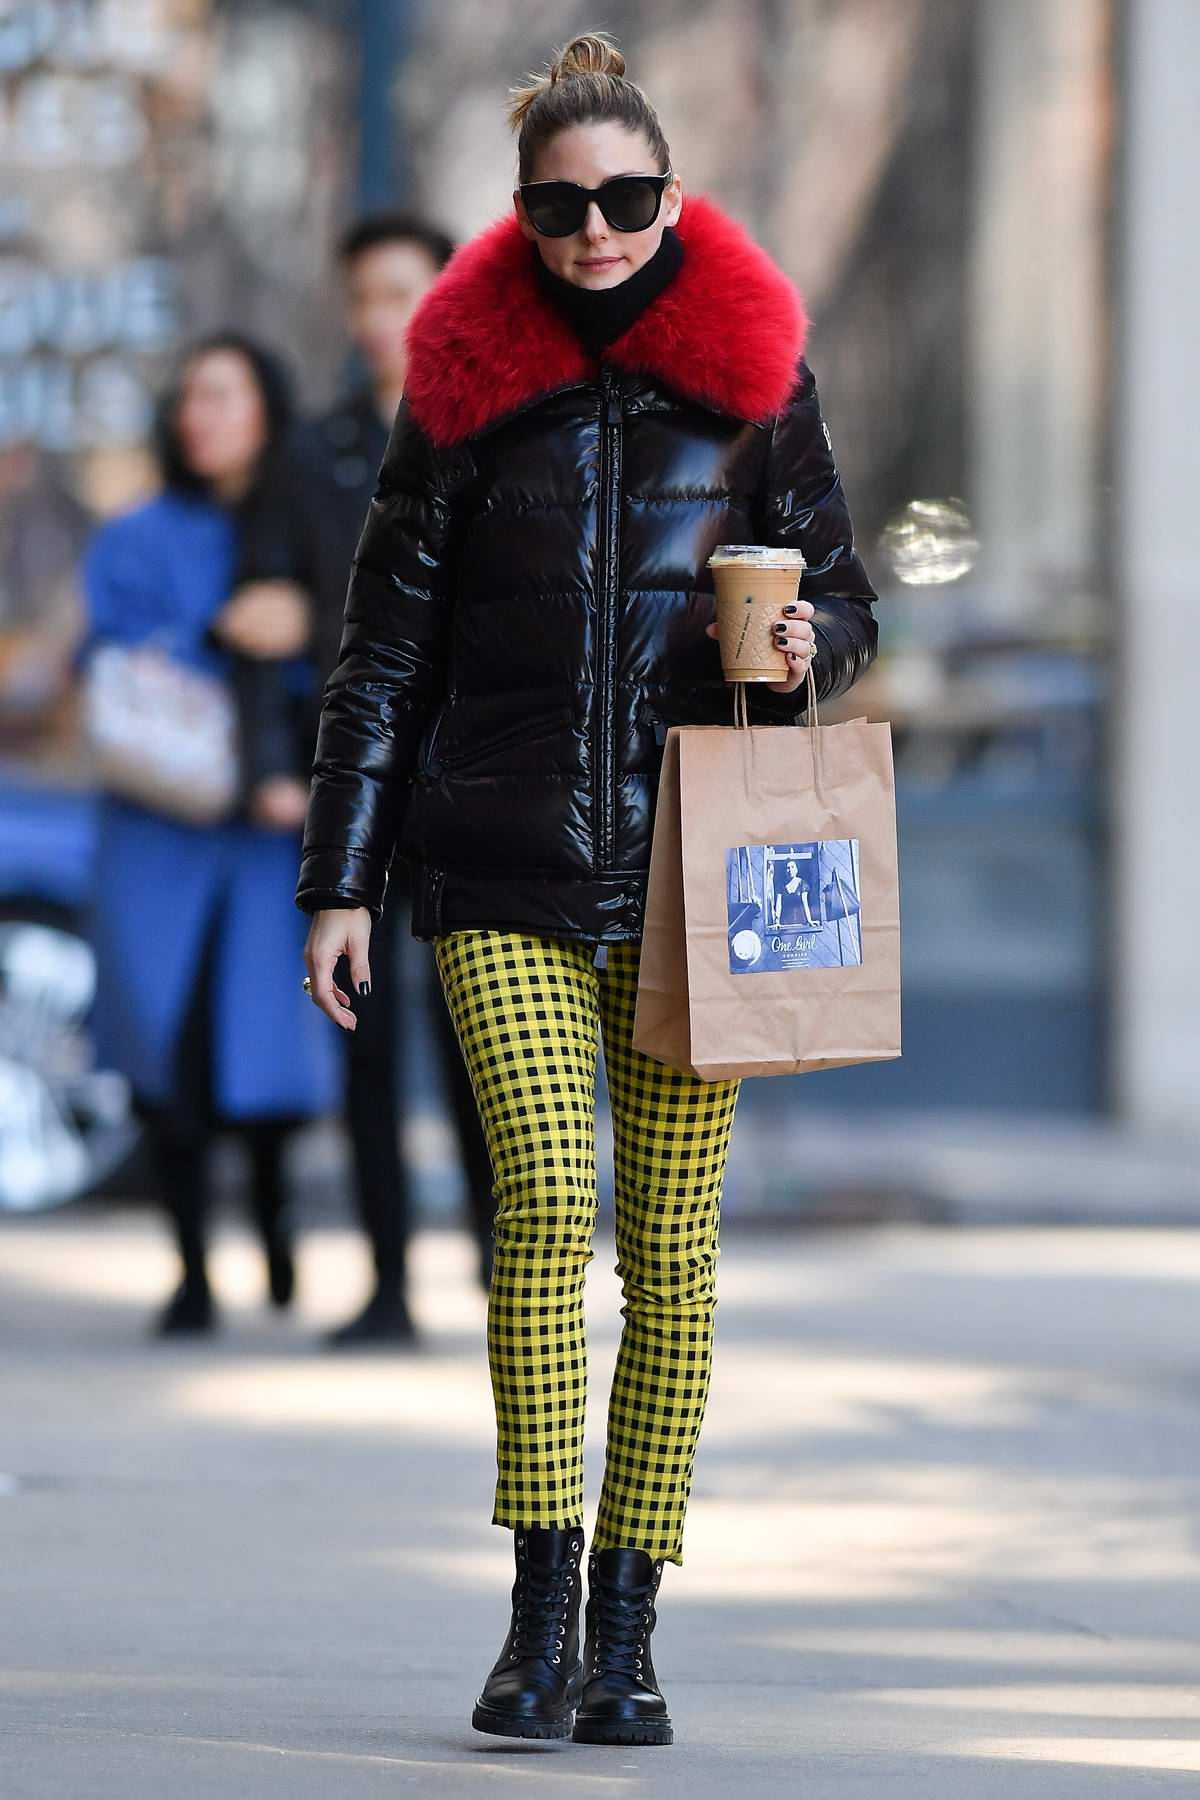 Olivia Palermo seen wearing yellow patterned pants with red fur lined black jacket while out in Brooklyn, New York City